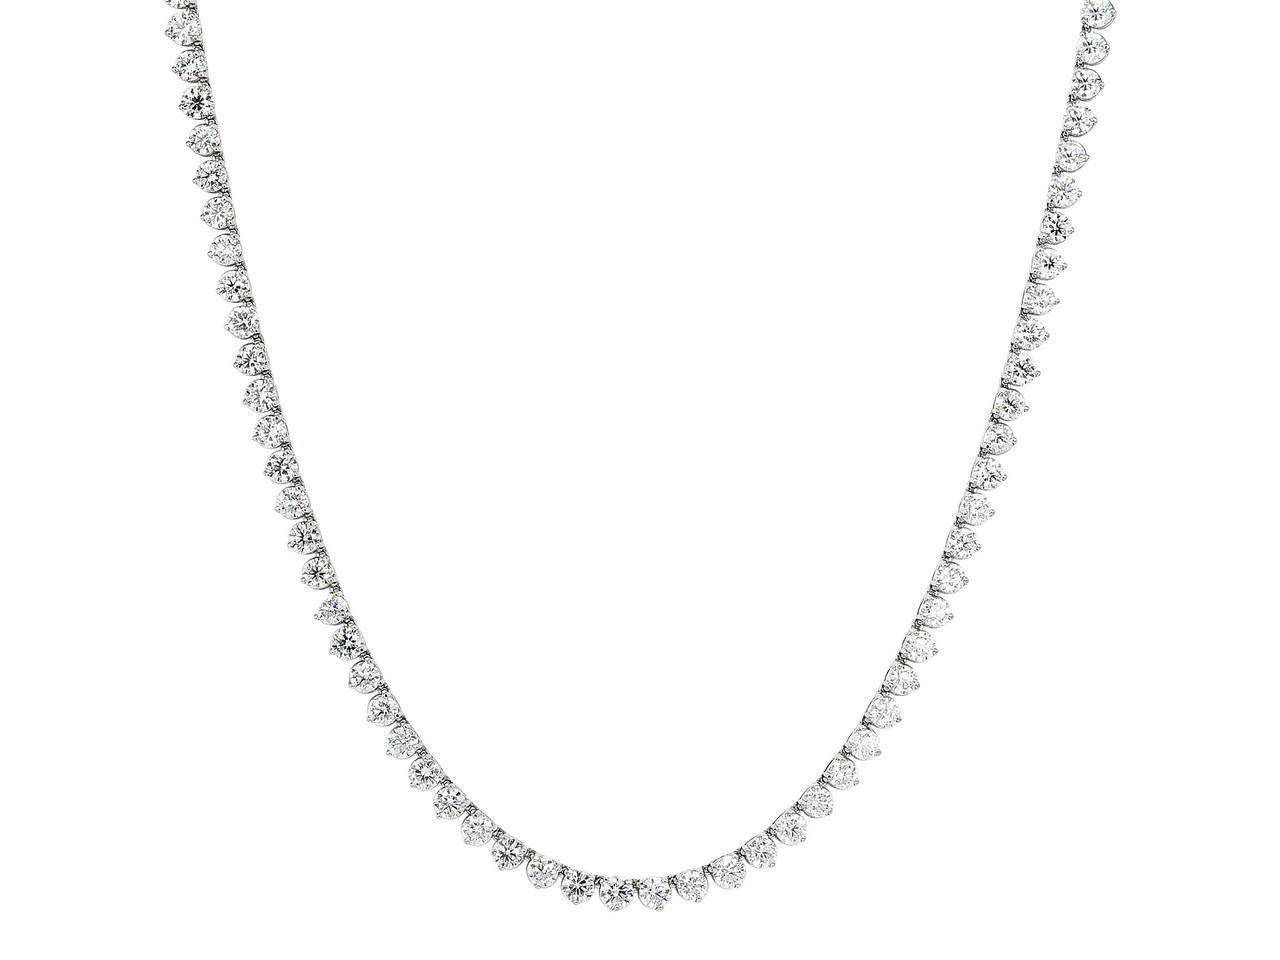 55.53 Carat Diamond 32 Inch Riviere Necklace 2